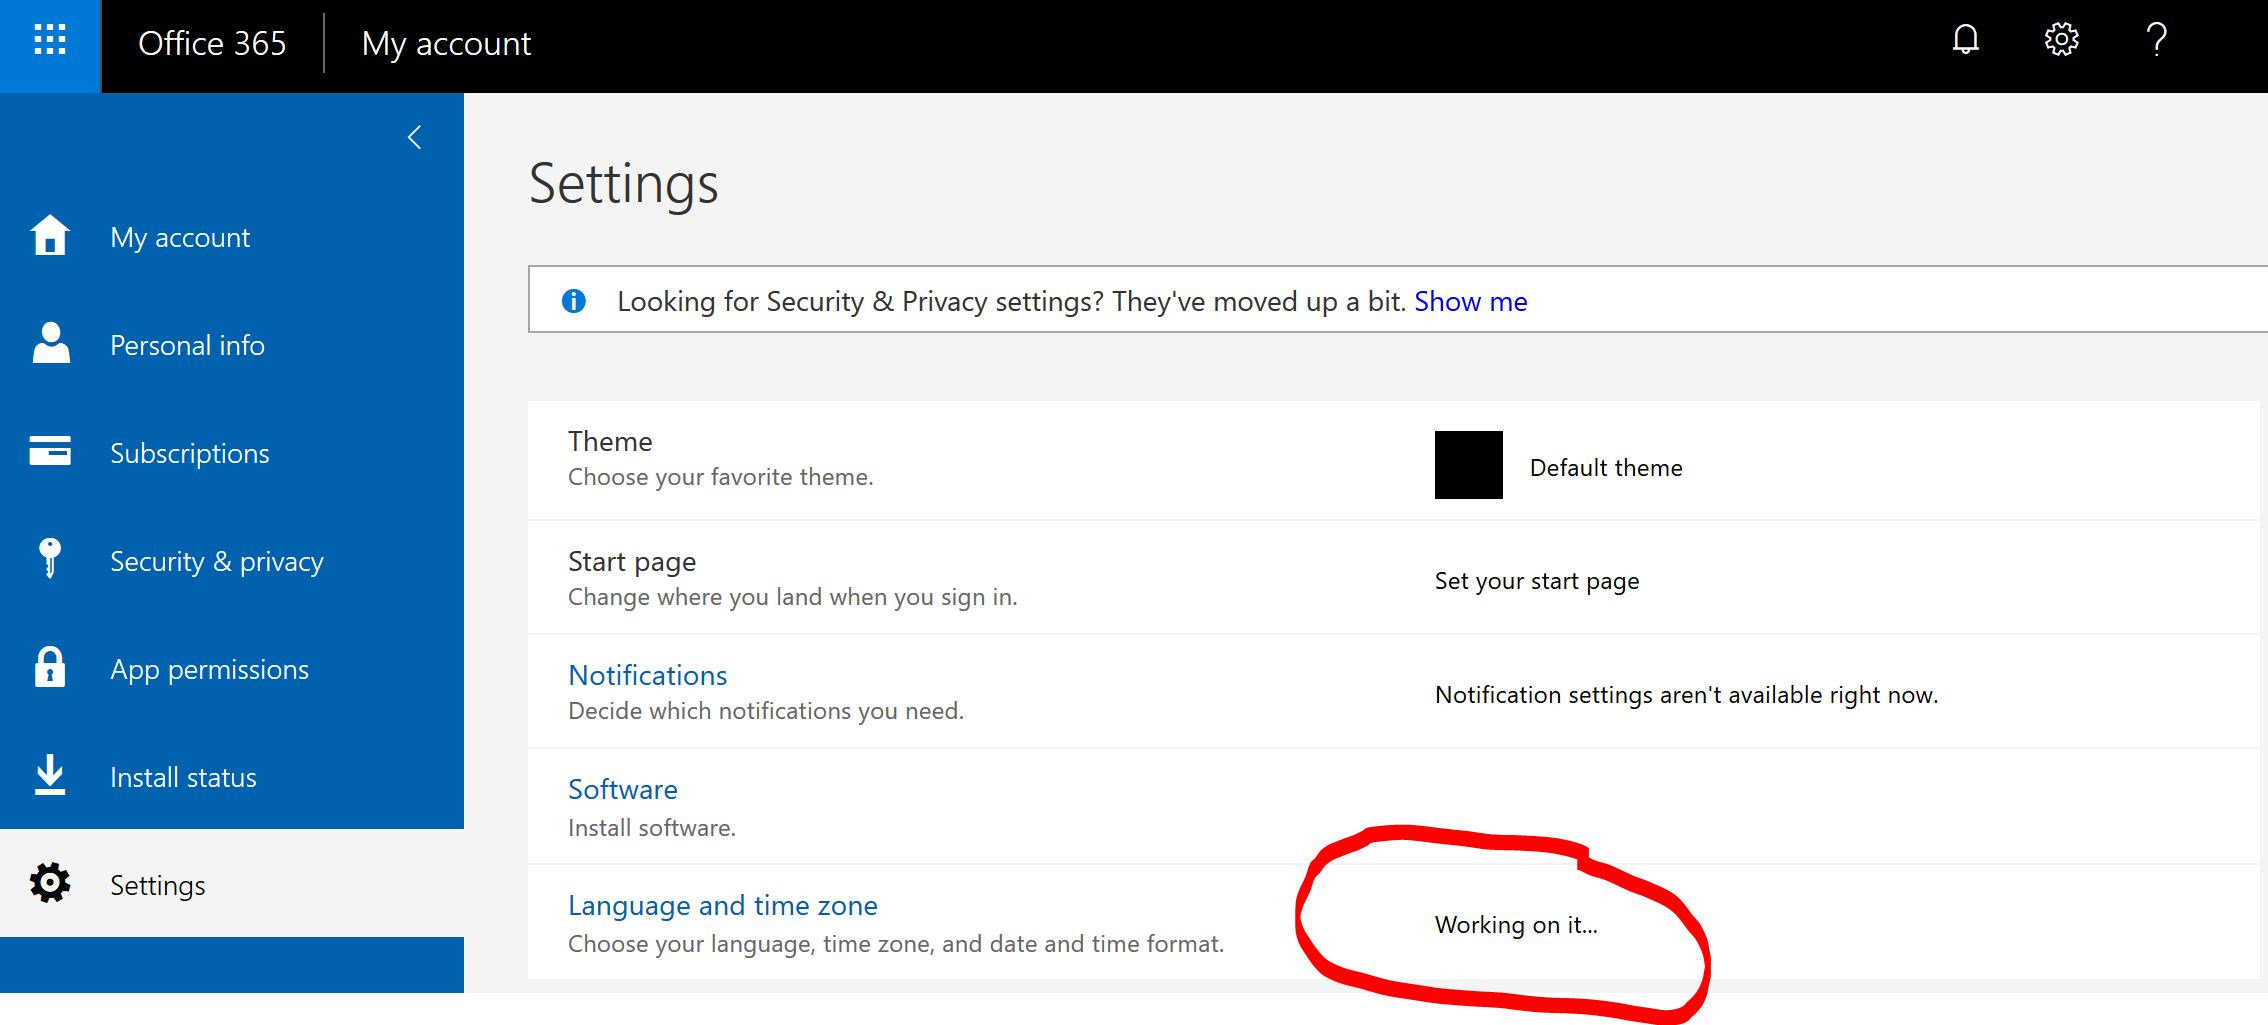 Unable to change language to English in OneDrive. - Microsoft Community